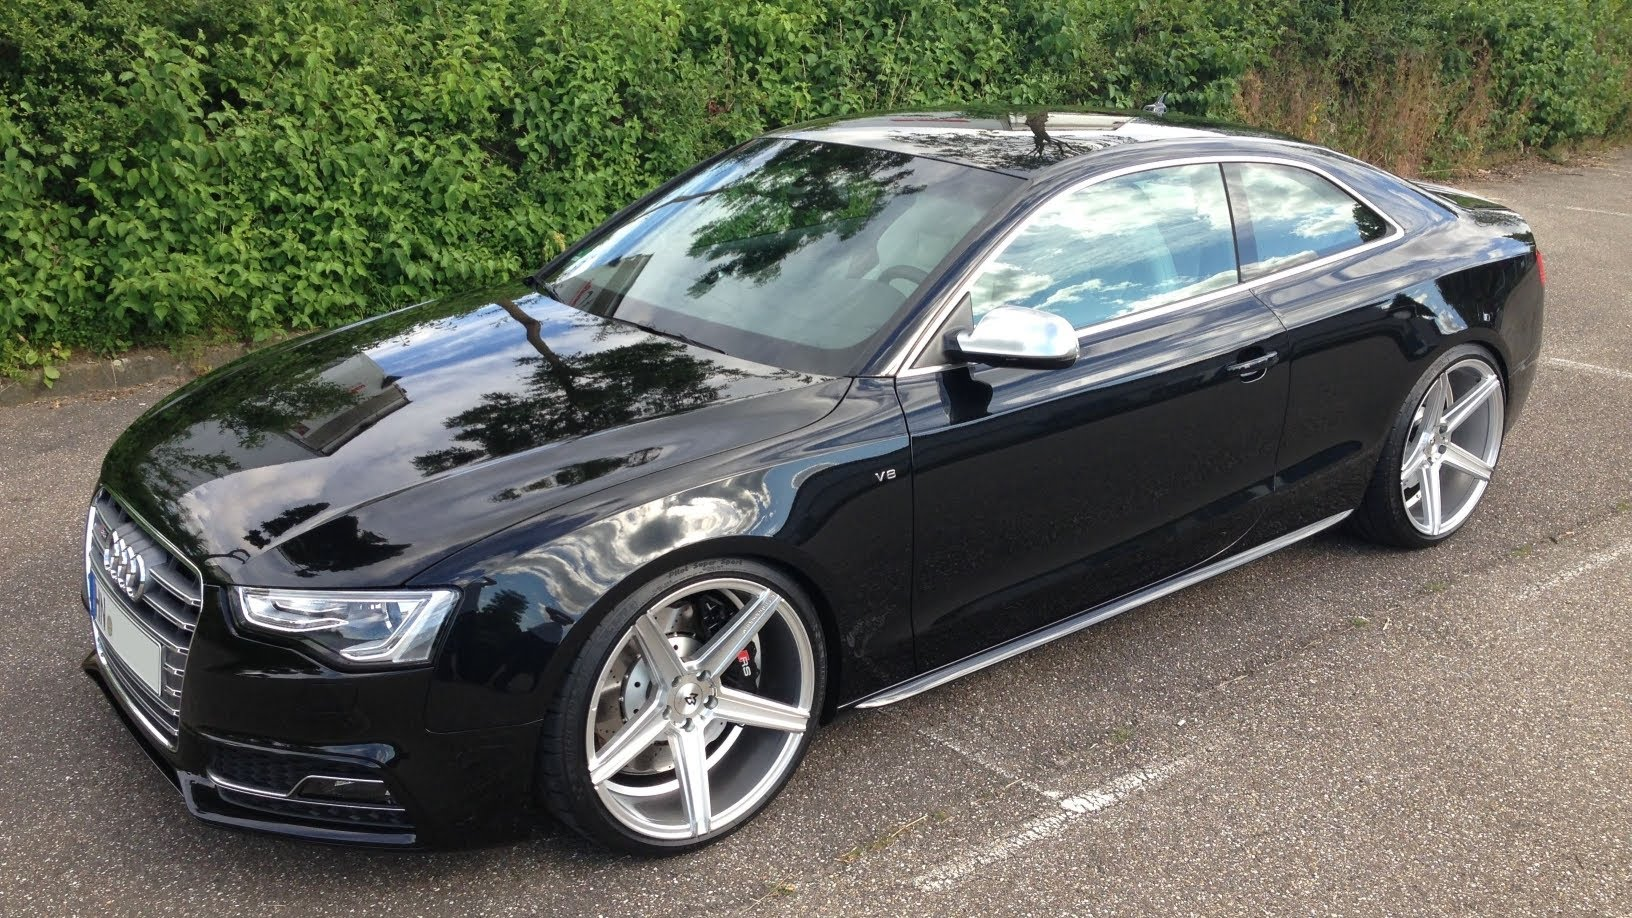 Inexperienced Driver Crashes Audi S5 In The Bus Station